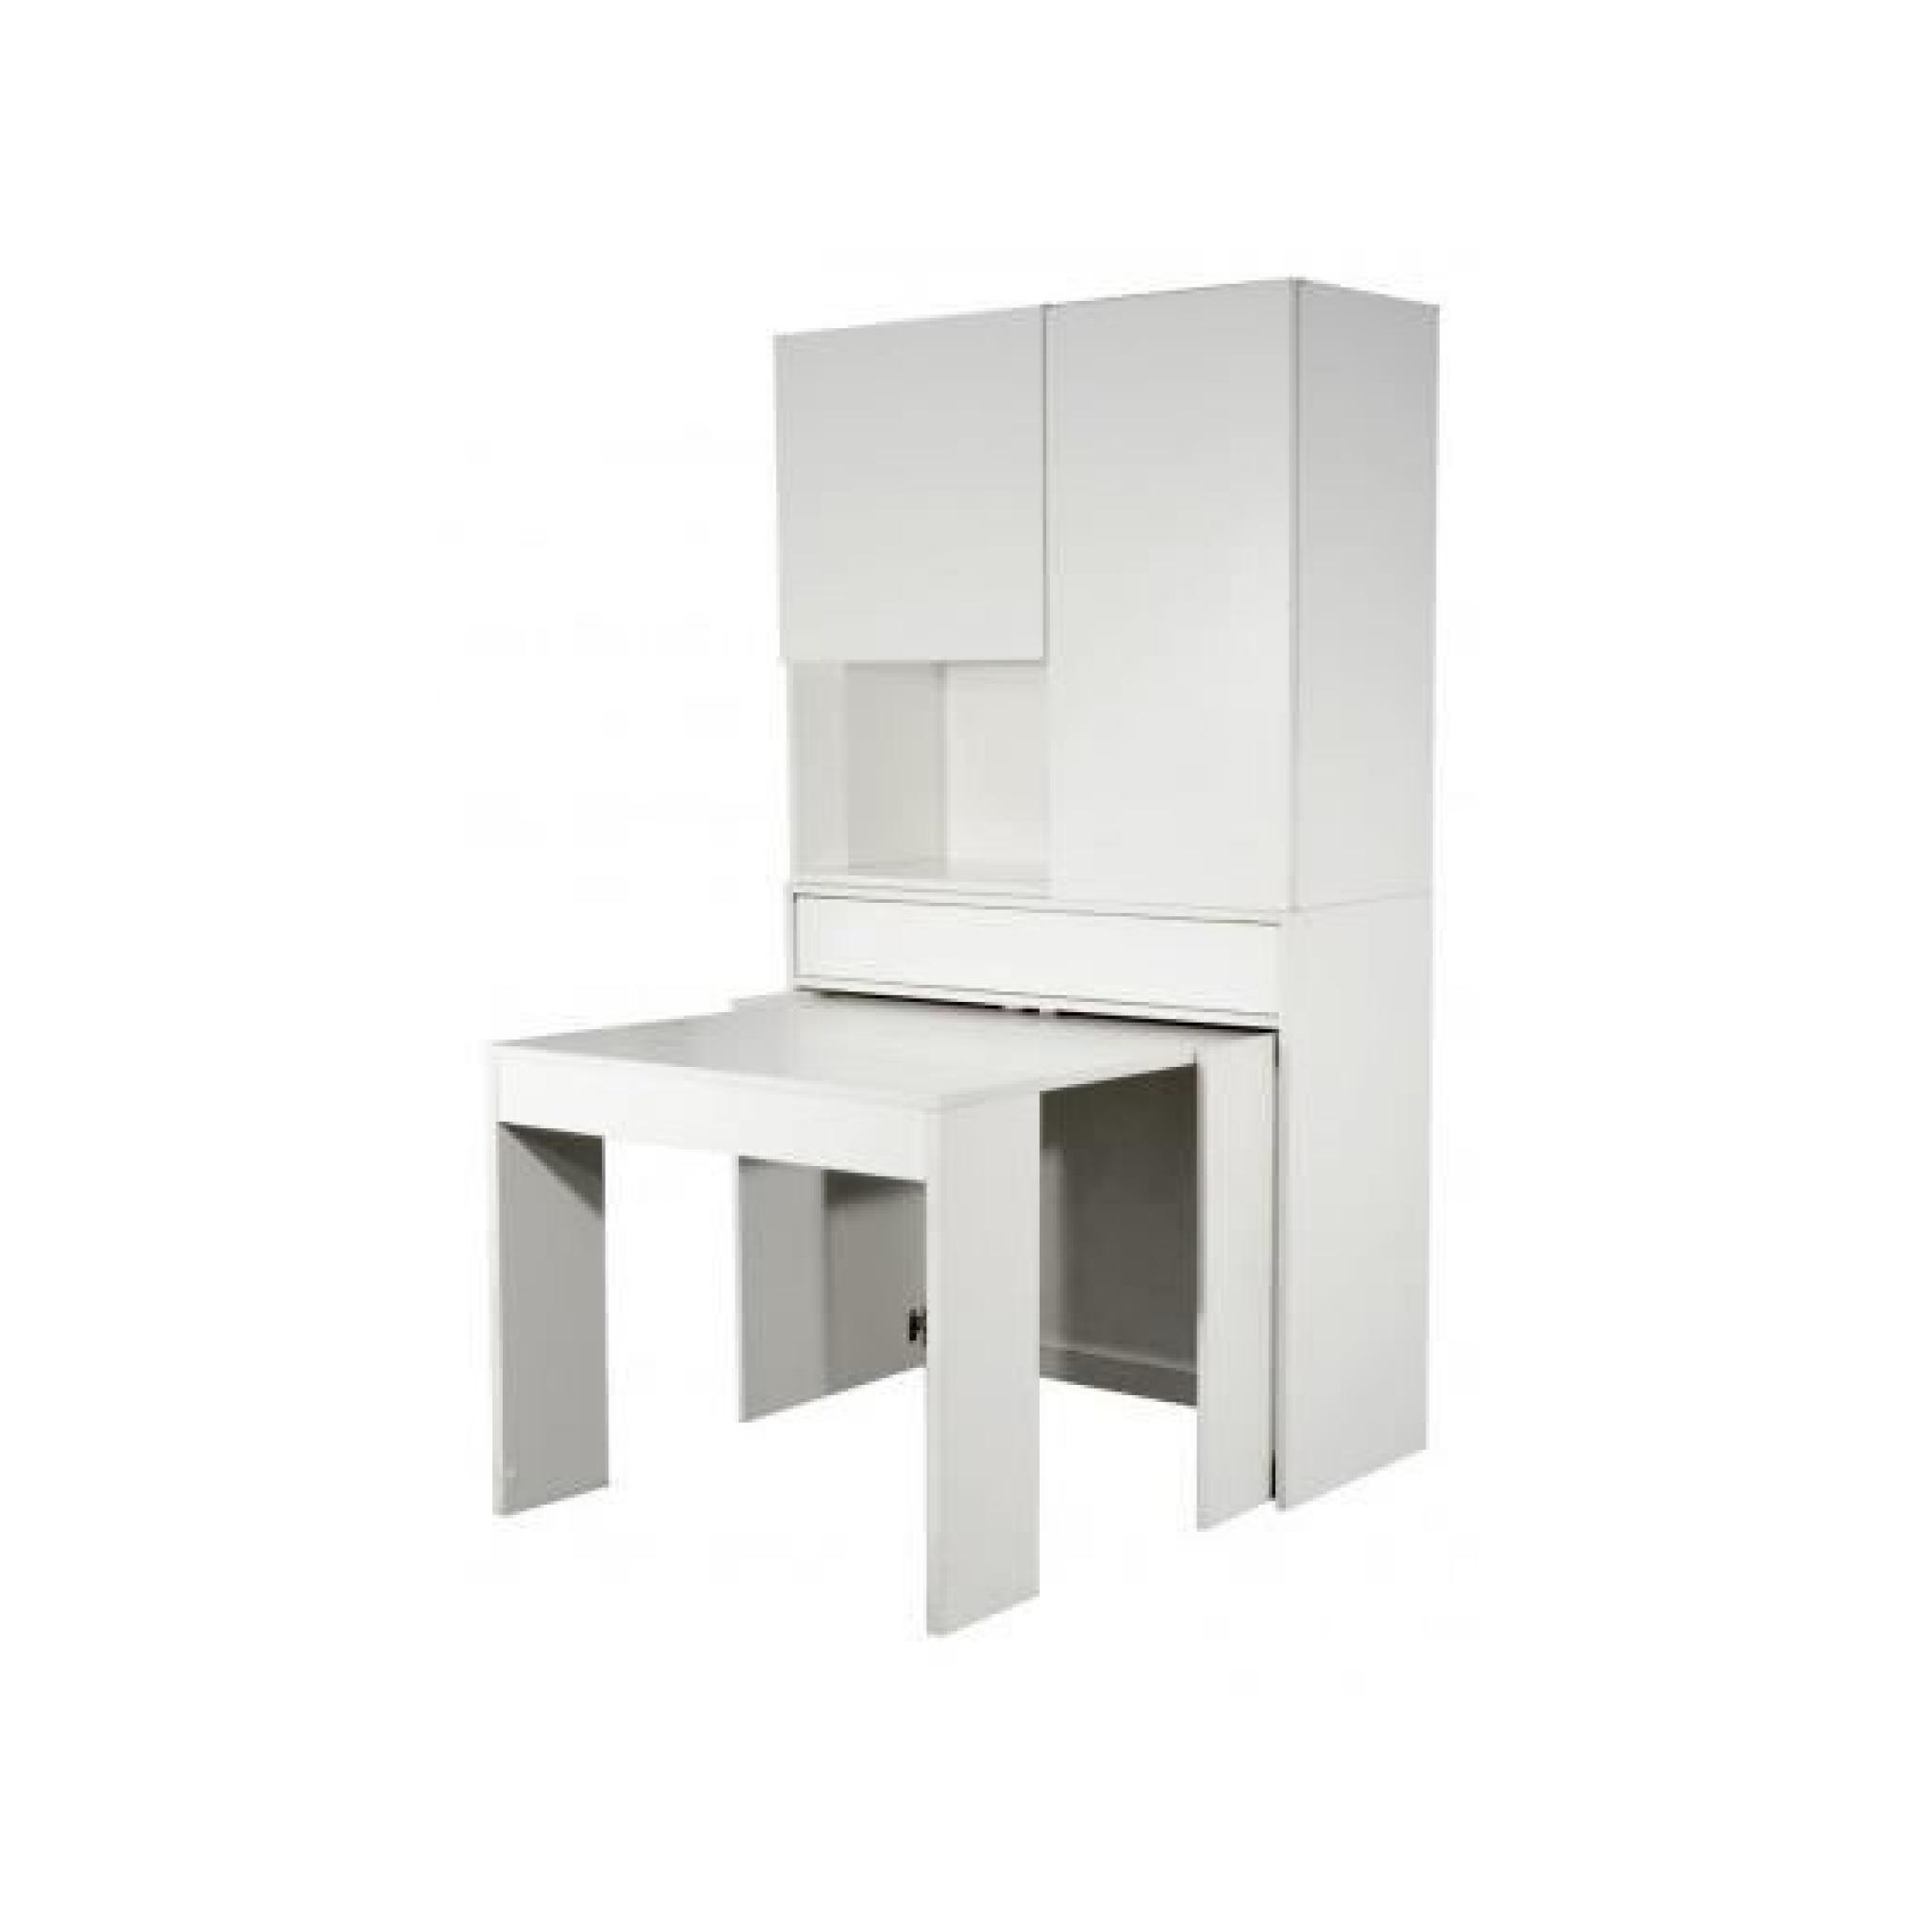 Meuble avec table integree 15 hop placard avec table for Meuble table integree